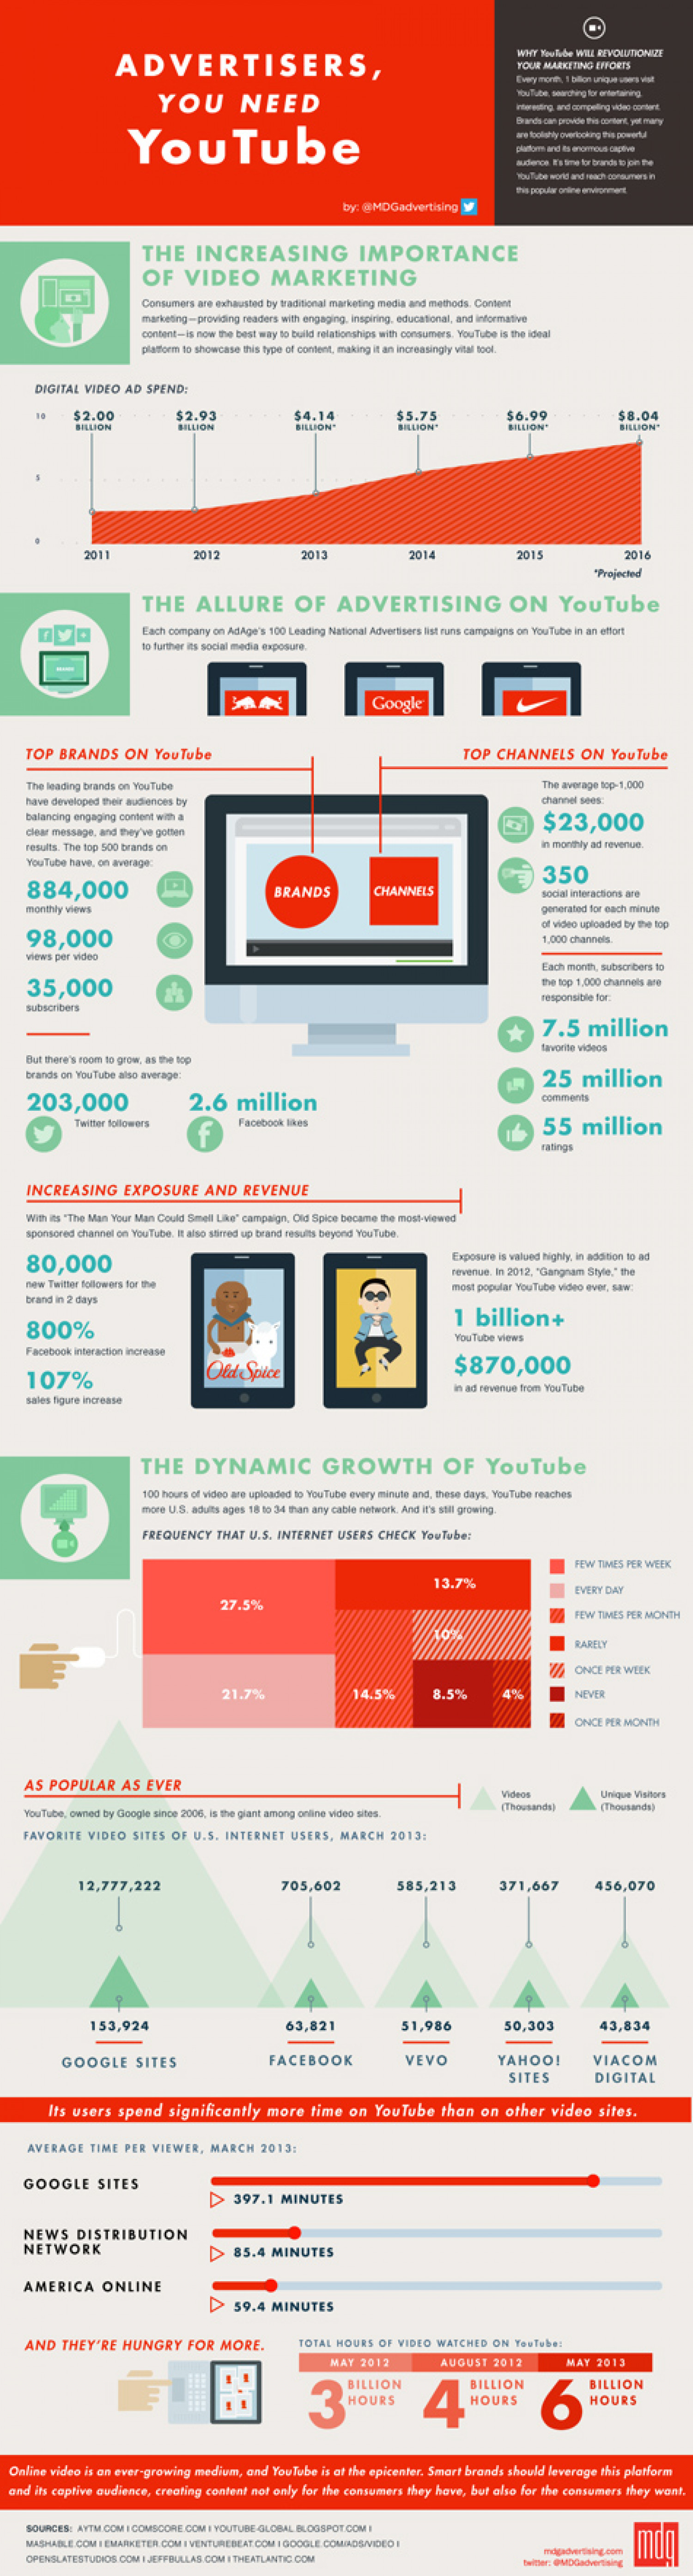 Advertisers, You Need YouTube Infographic